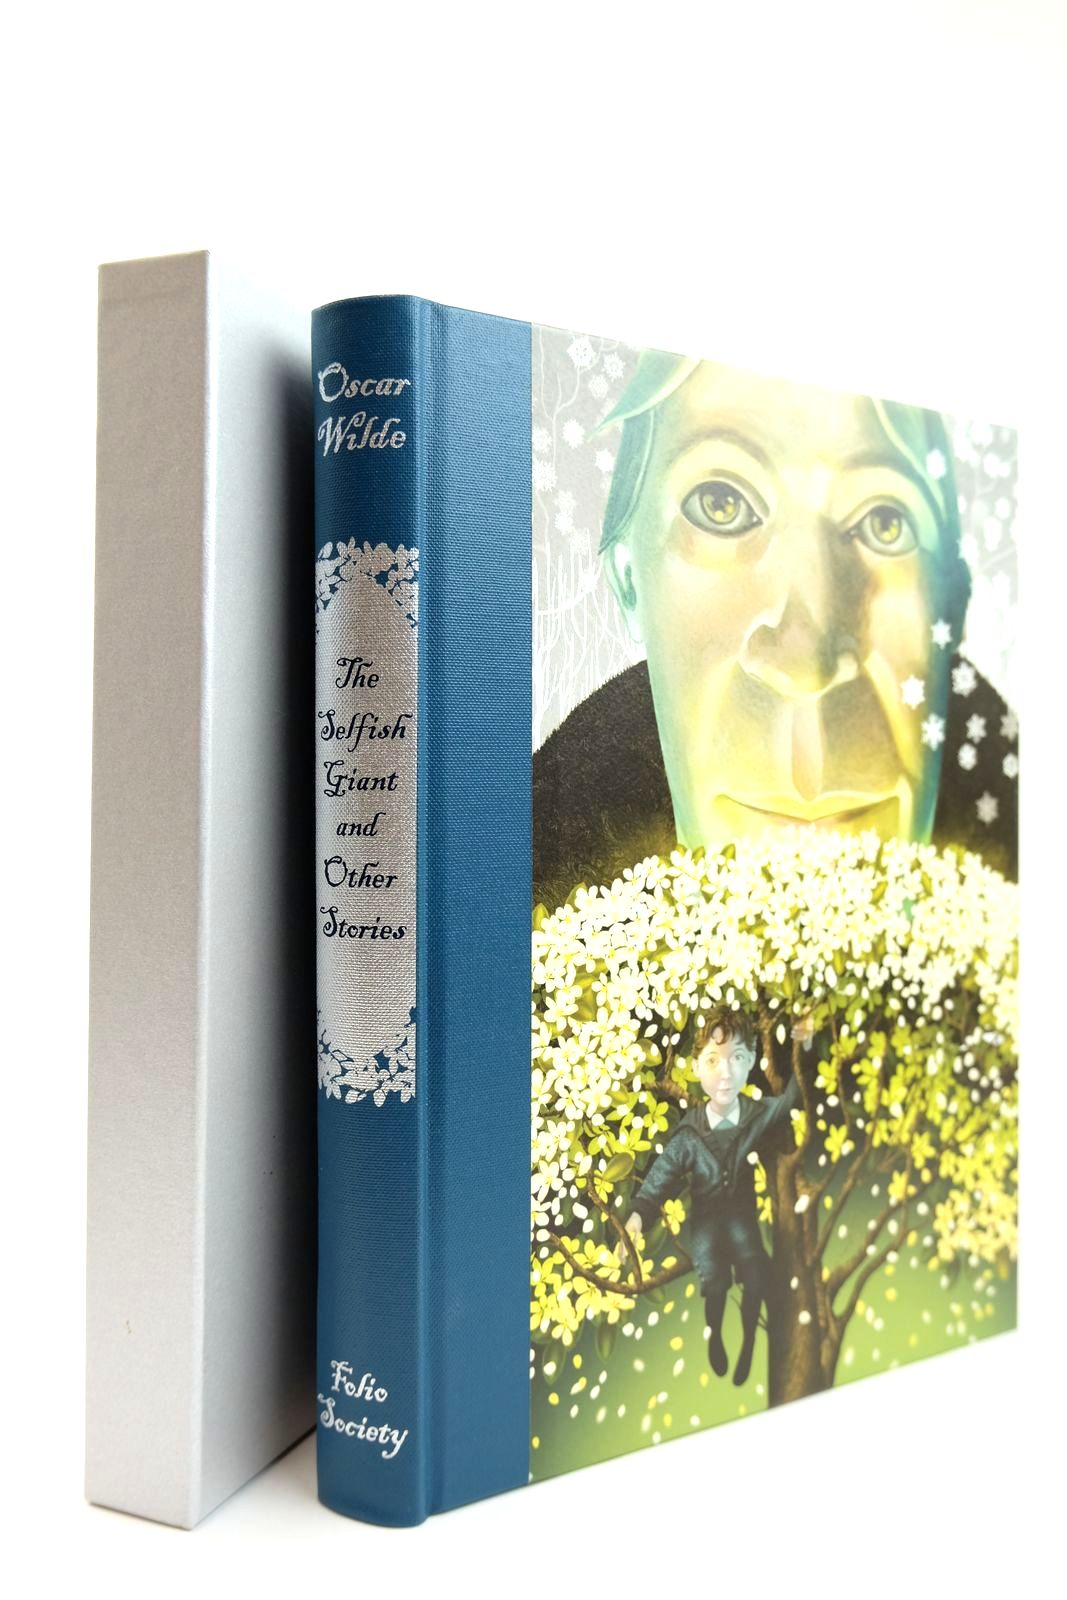 Photo of THE SELFISH GIANT AND OTHER STORIES written by Wilde, Oscar illustrated by Baker-Smith, Grahame published by Folio Society (STOCK CODE: 2131813)  for sale by Stella & Rose's Books